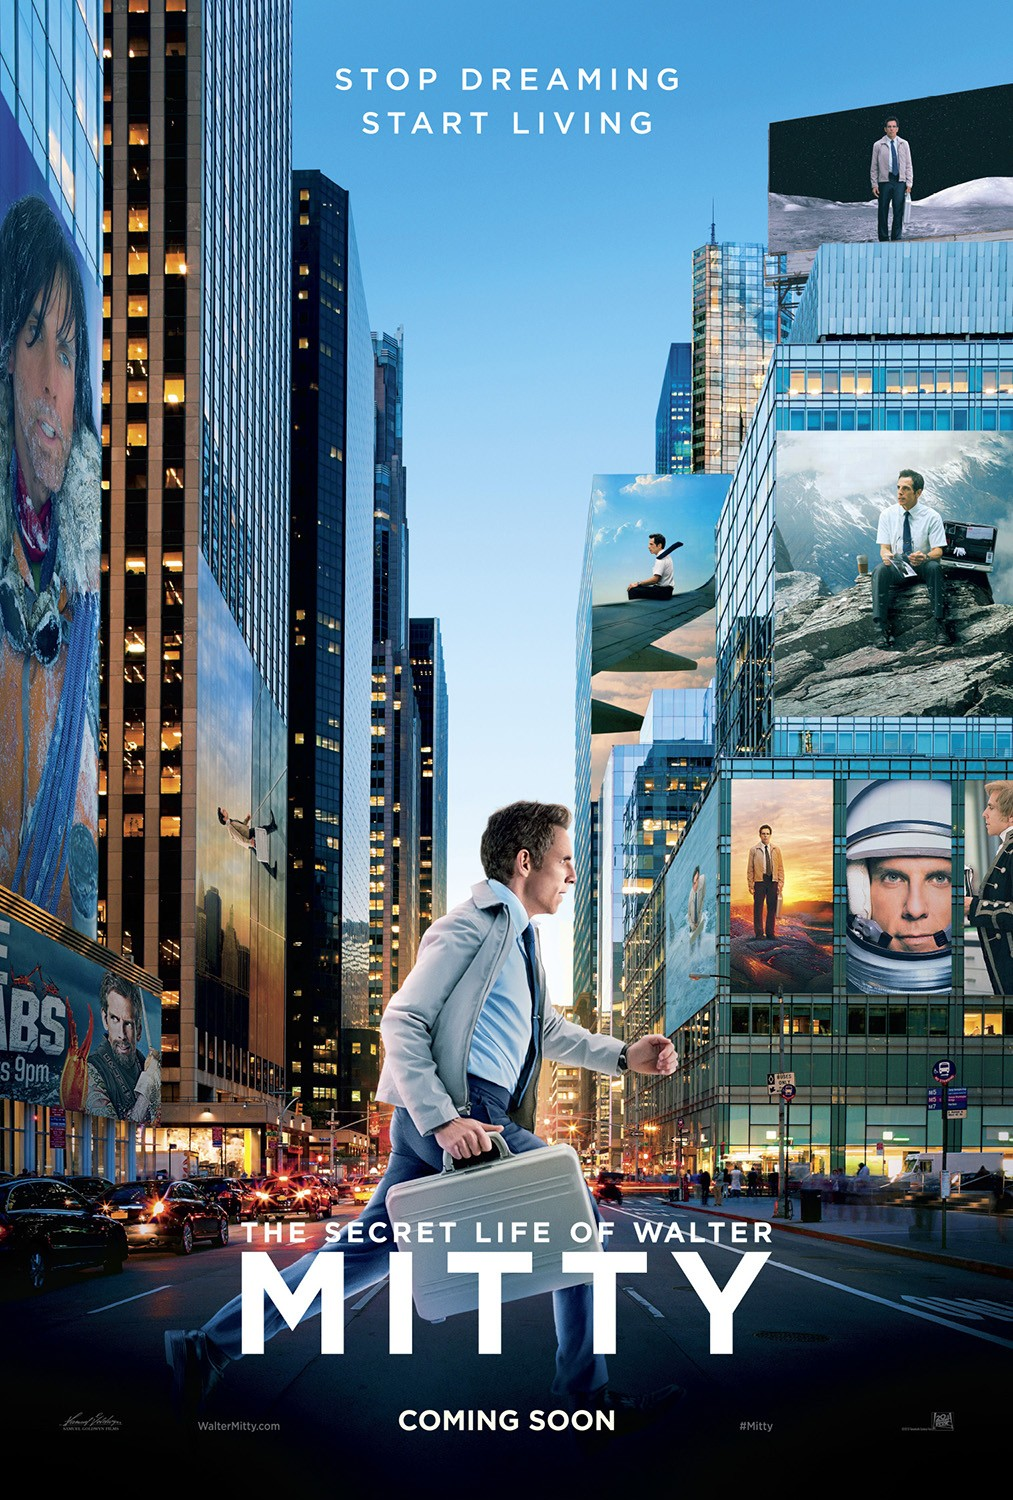 The Secret Life of Walter Mitty-Official Poster Banner PROMO POSTER XLG-21NOVEMBRO2013